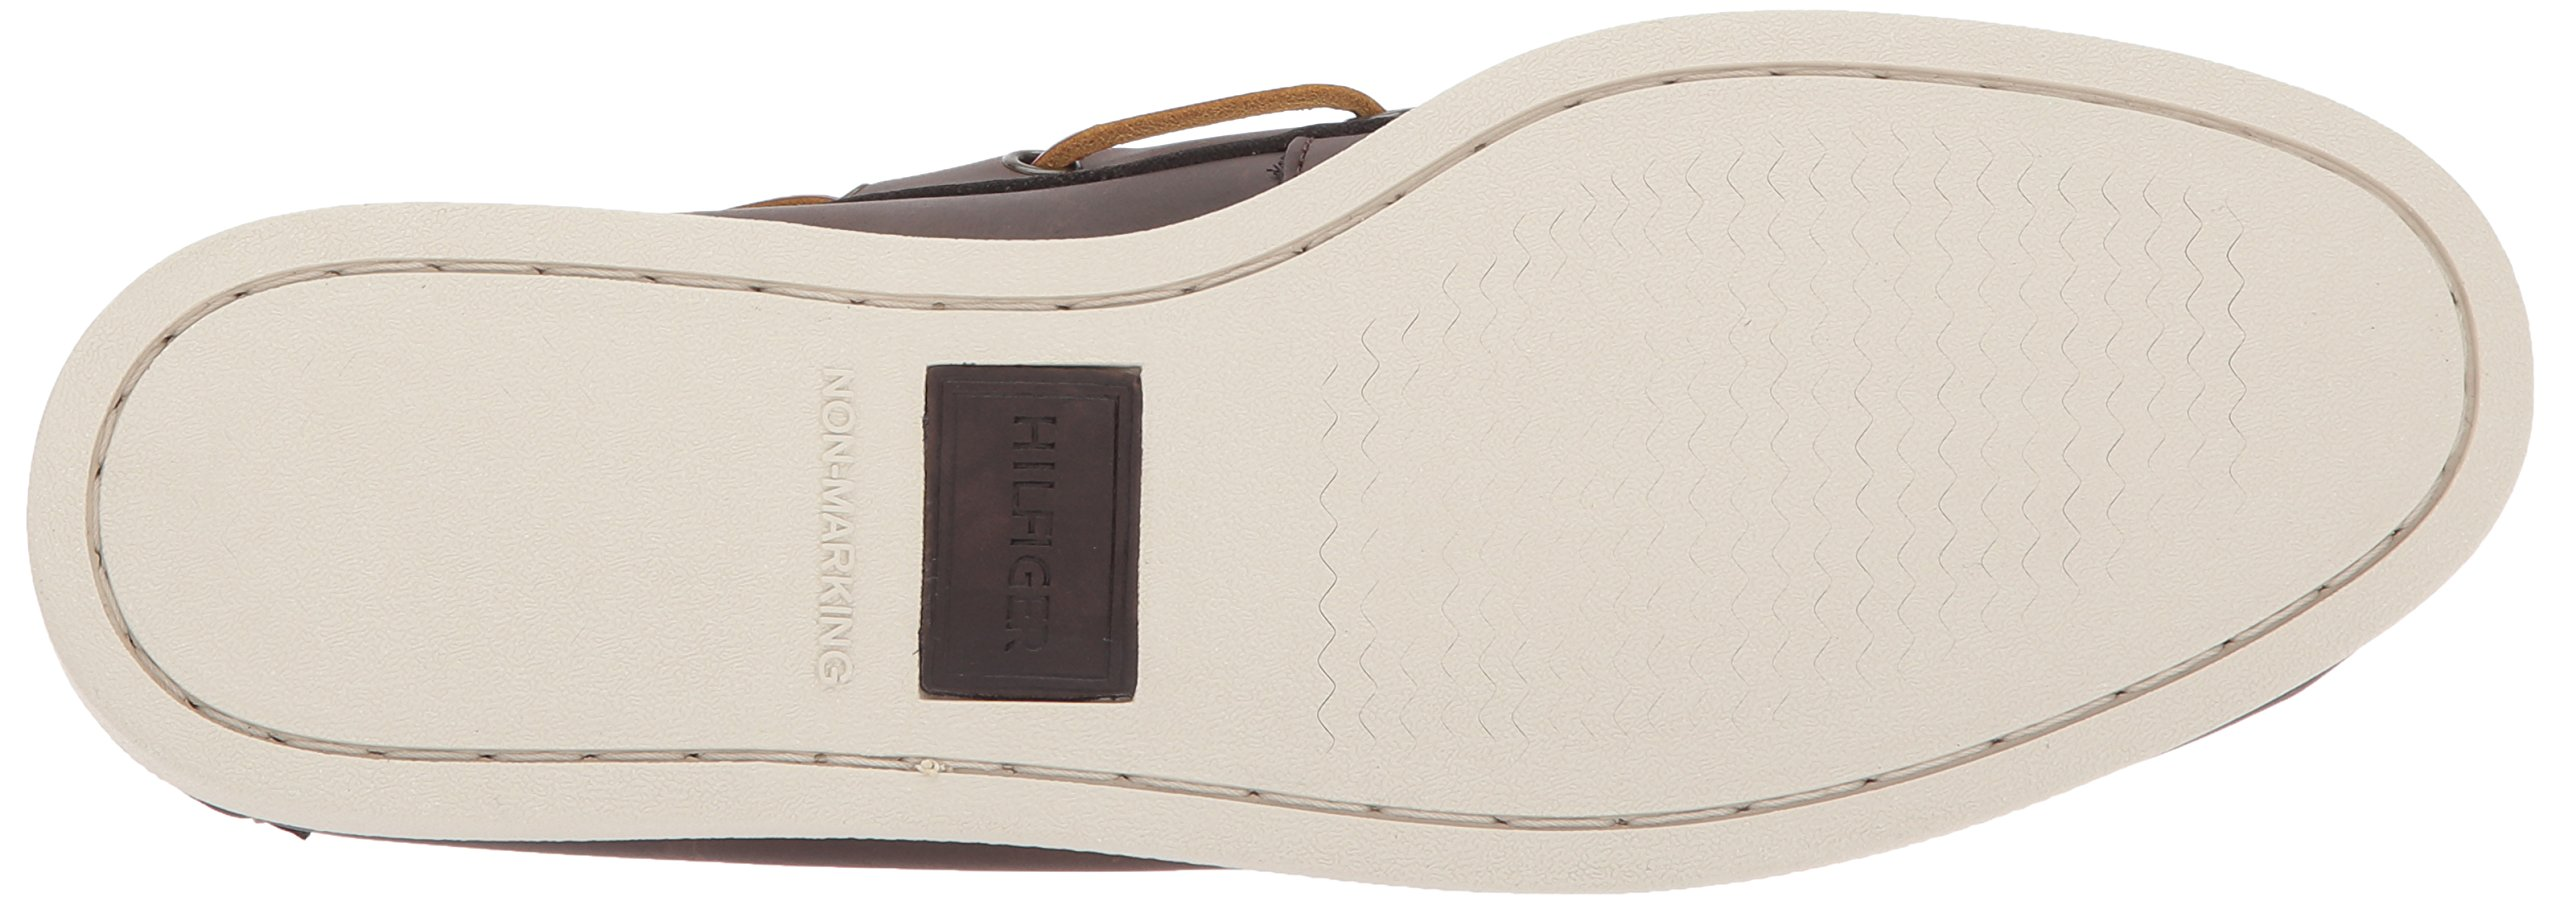 Tommy Hilfiger Men's Bowman Boat shoe,Coffee Bean,8.5 M US by Tommy Hilfiger (Image #3)